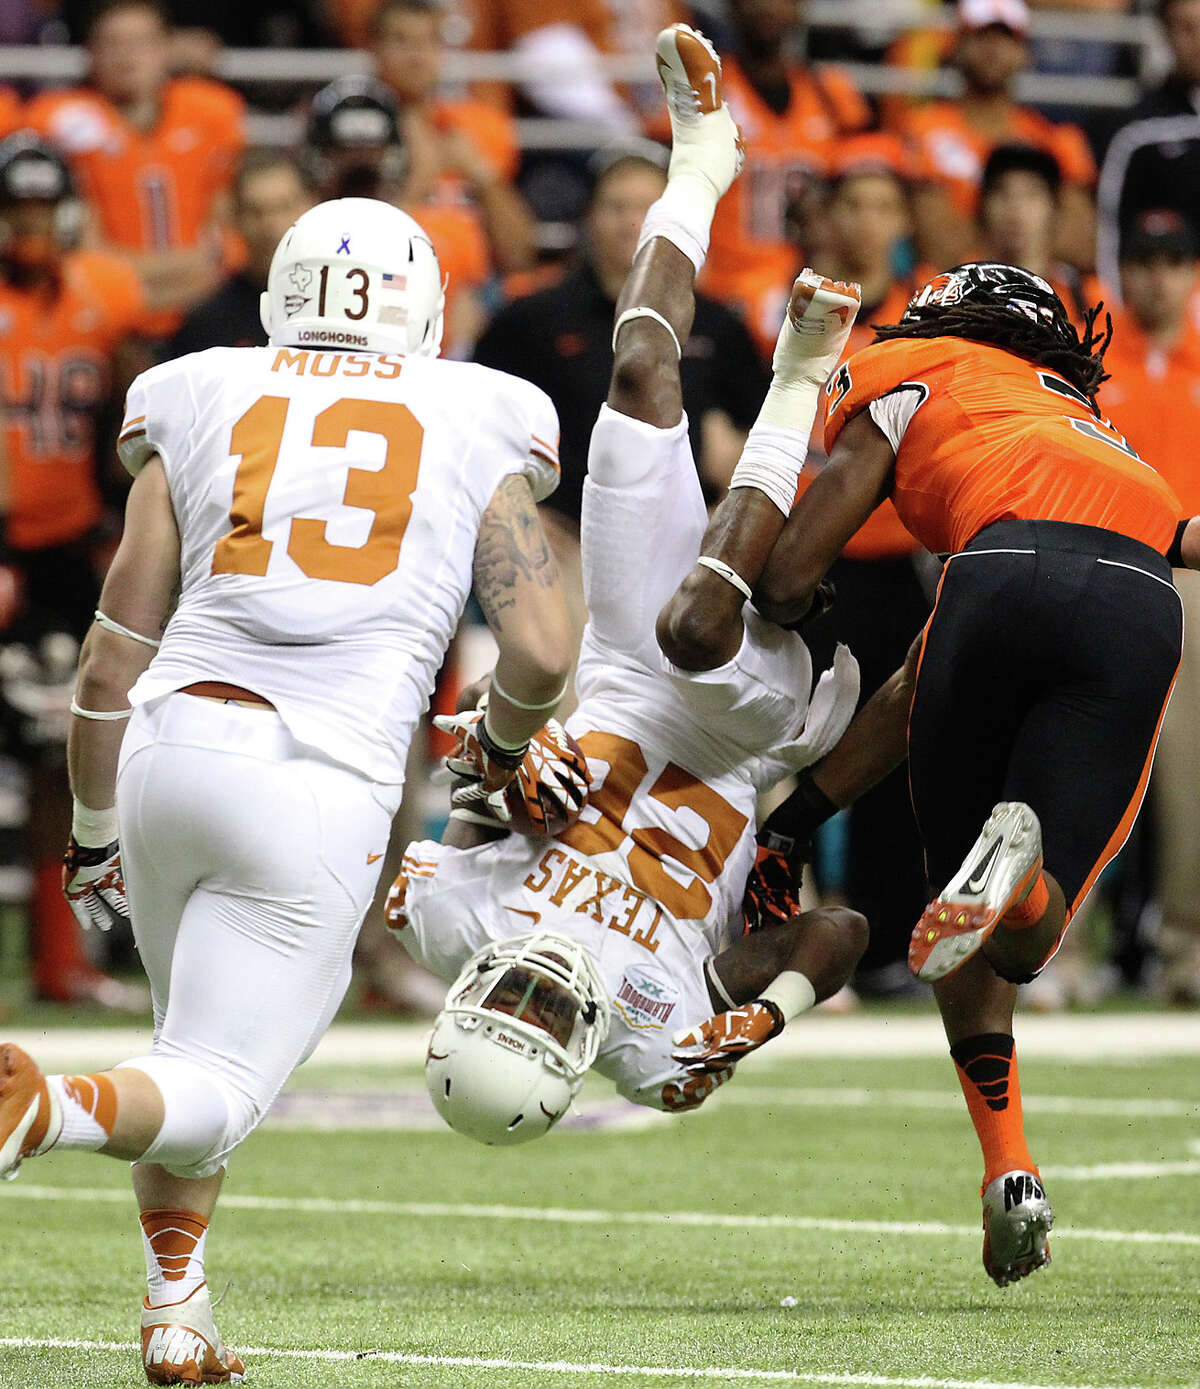 Texas' D. J. Monroe (26) gets flipped over while returning a kick against Oregon State's Anthony Watkins (03) in the first half of the Valero Alamo Bowl on Saturday, Dec. 29, 2012.